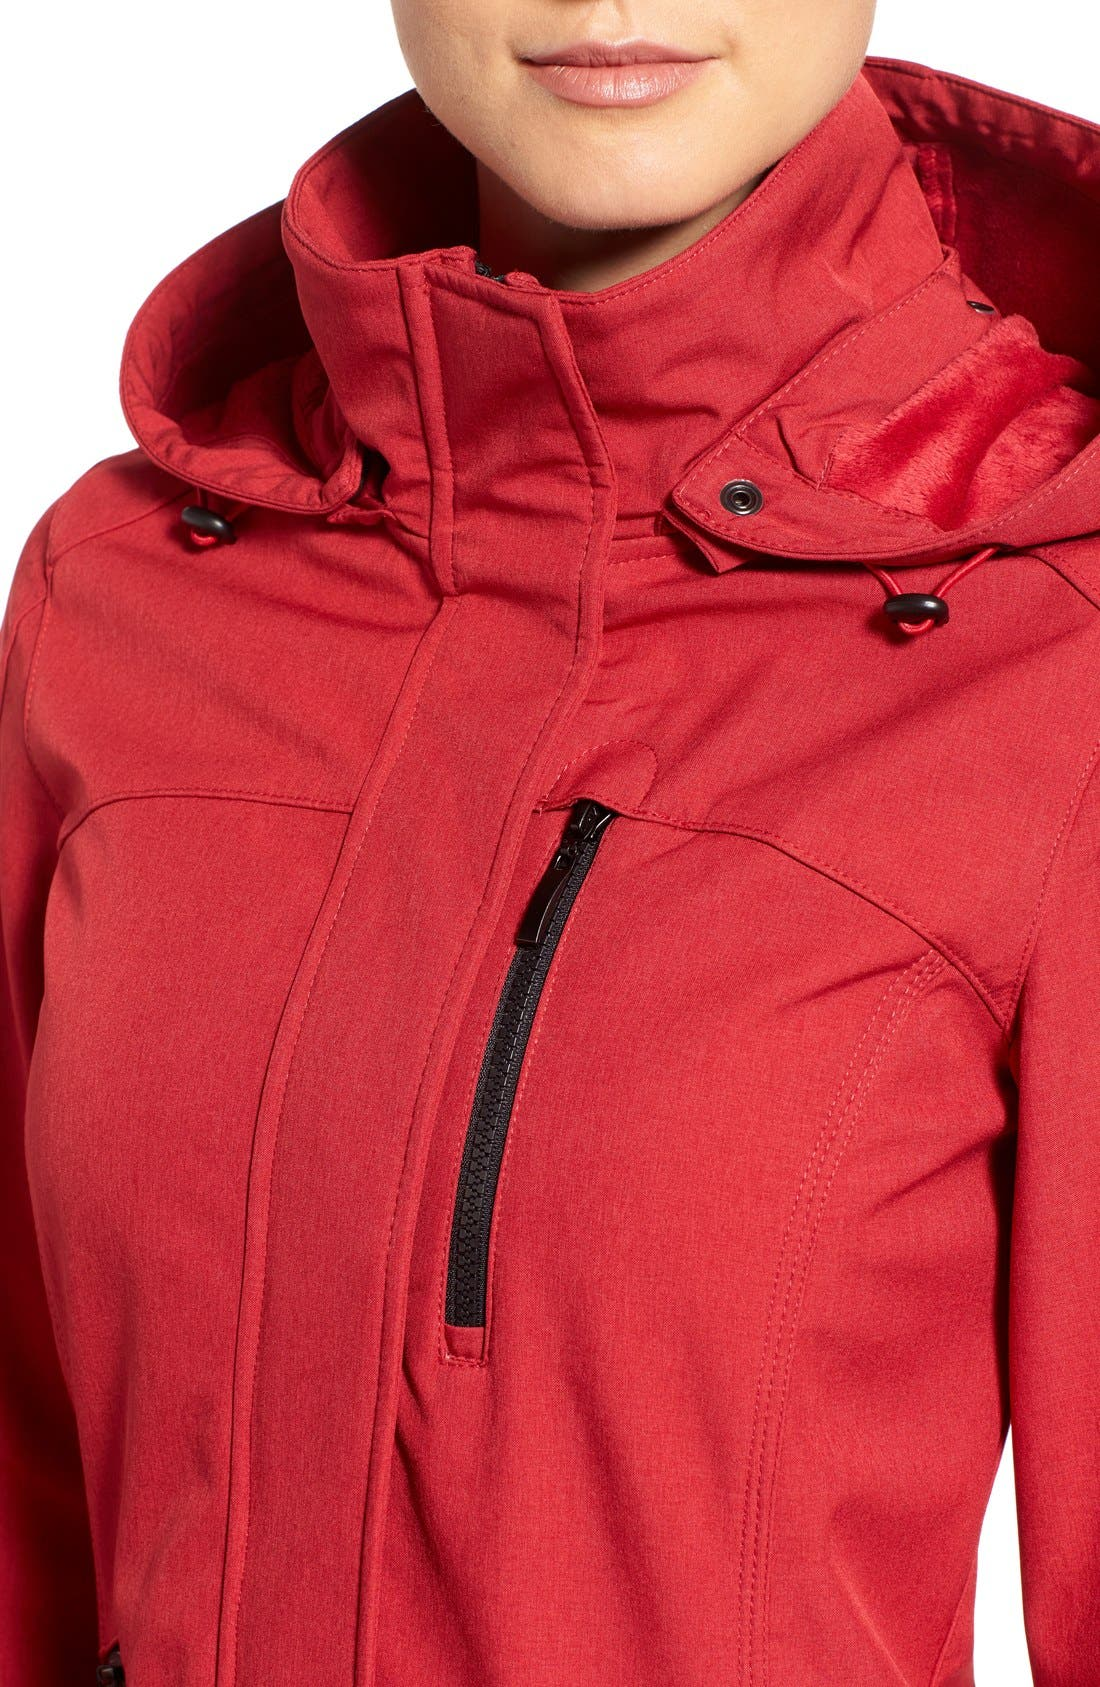 Crossdye Hooded Soft Shell Jacket,                             Alternate thumbnail 30, color,